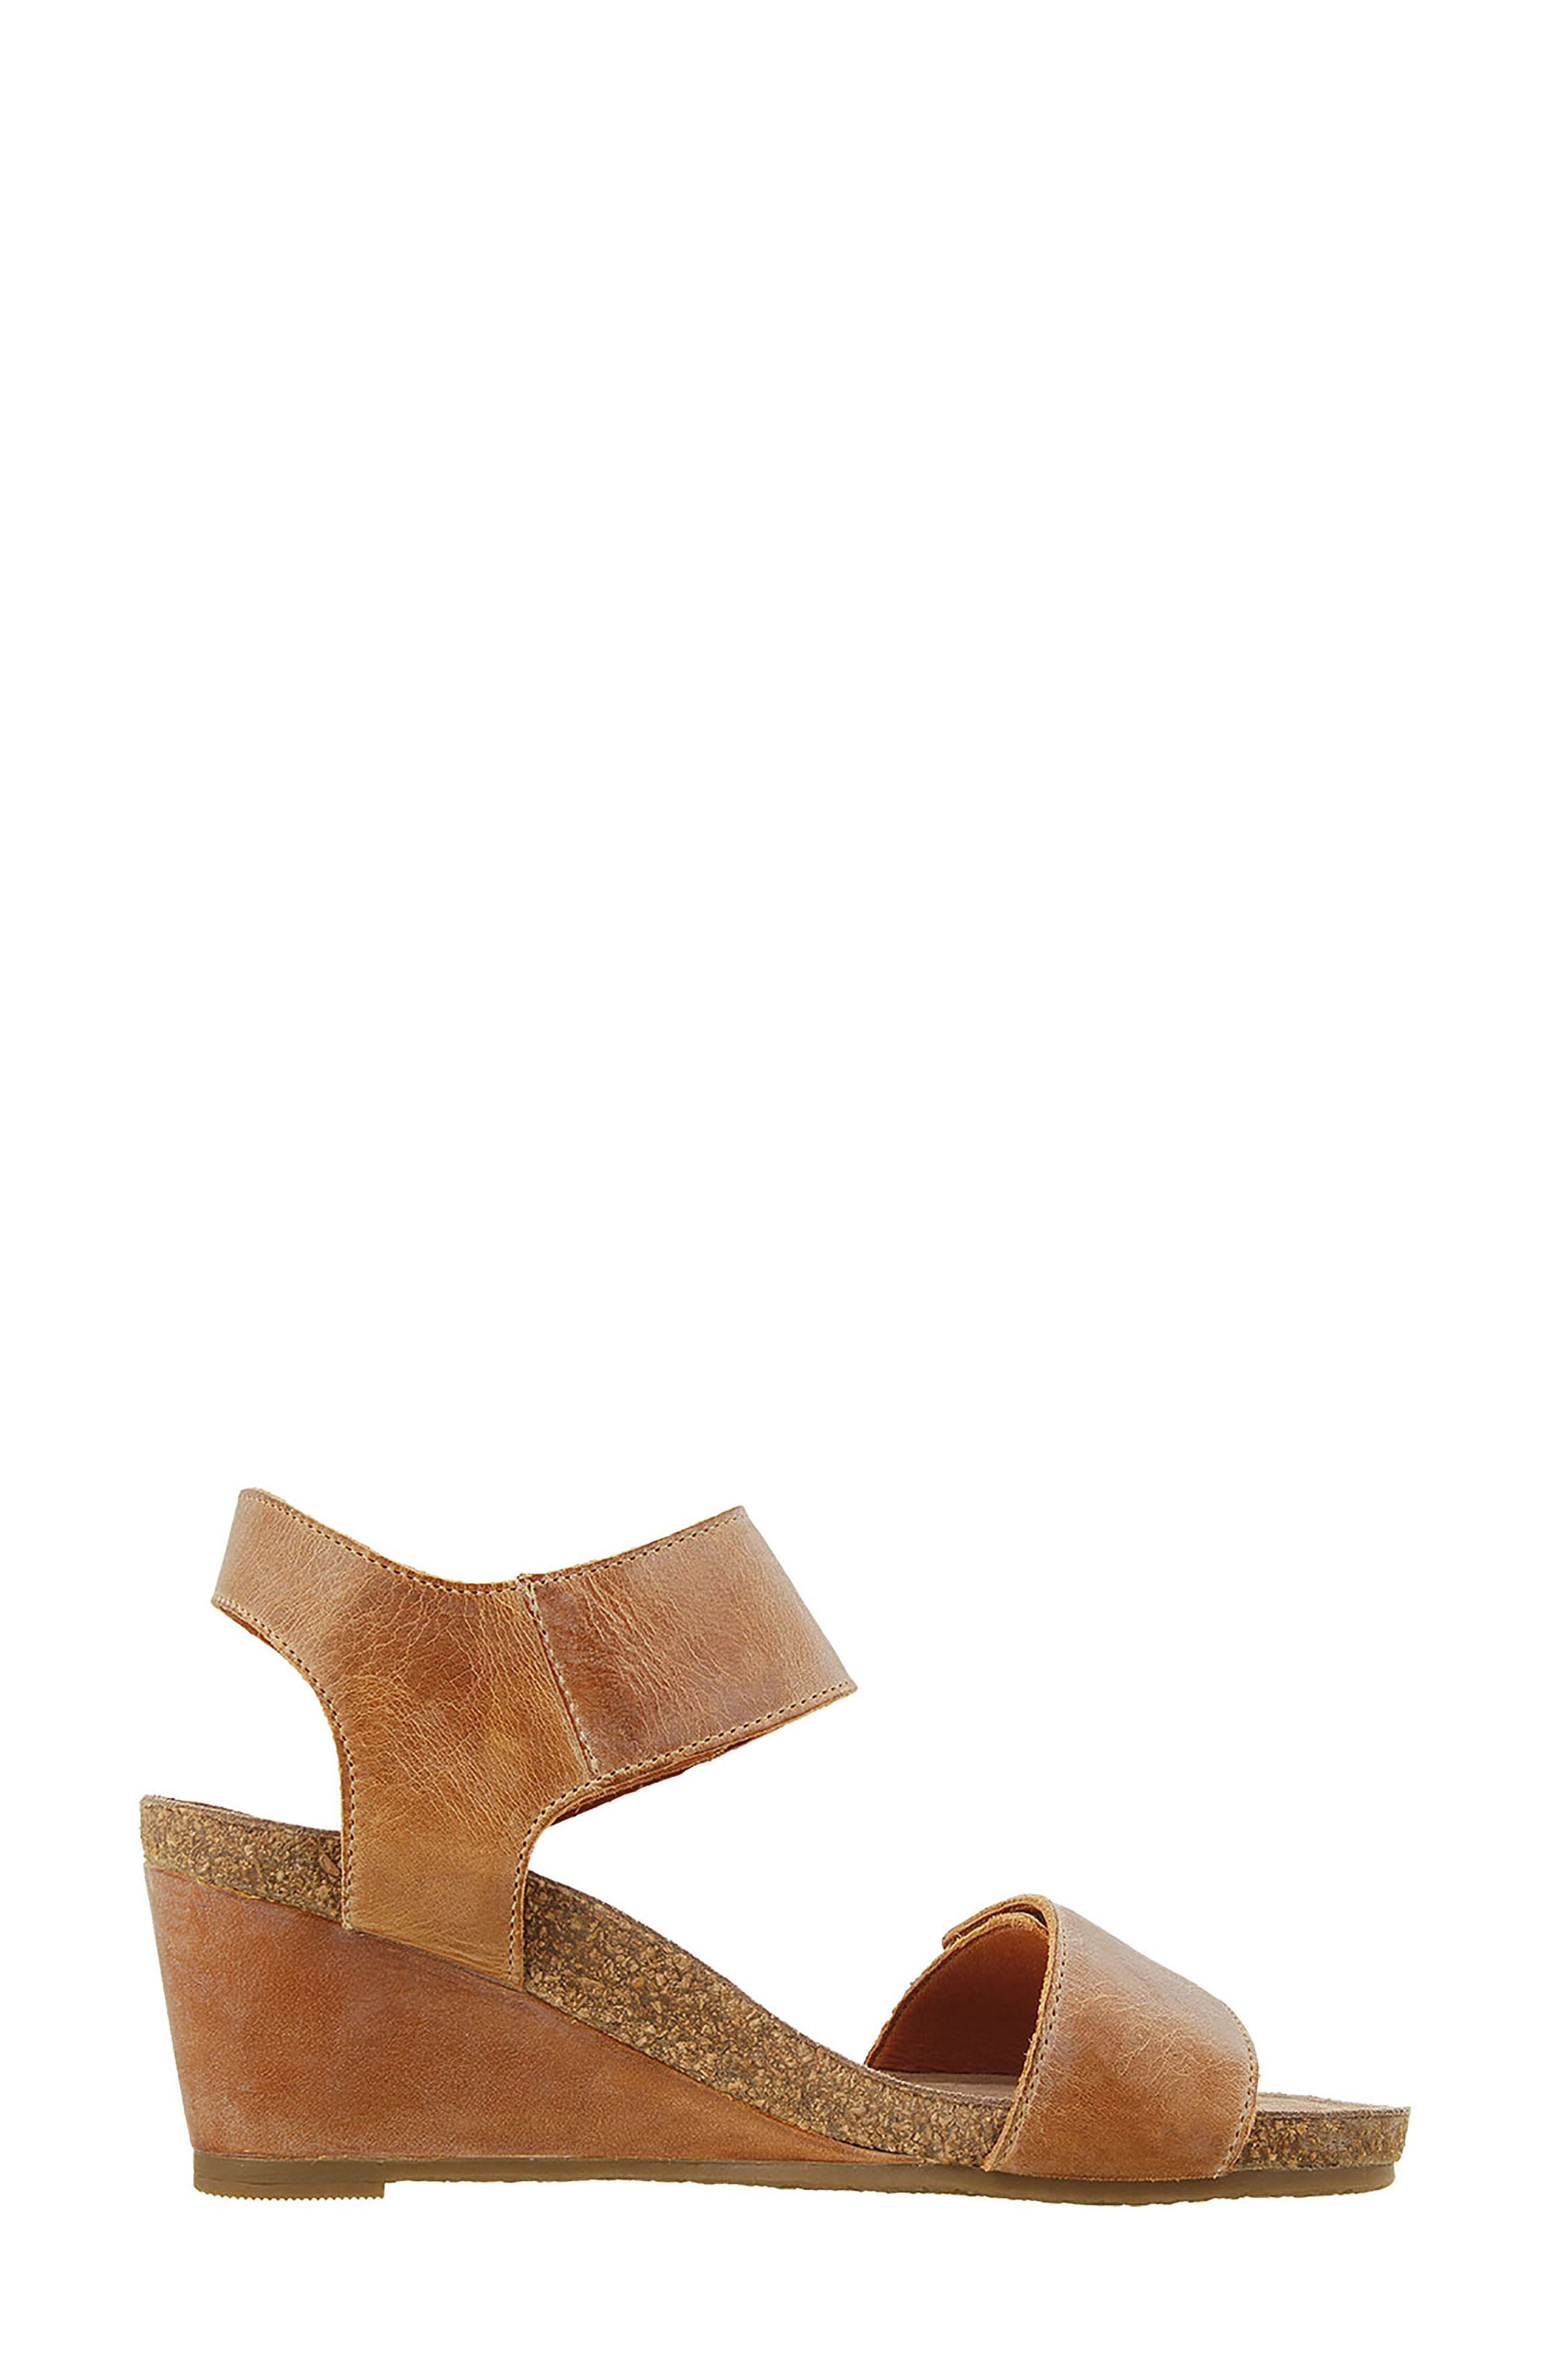 'Carousel 2' Wedge Sandal,                             Alternate thumbnail 3, color,                             Camel Suede